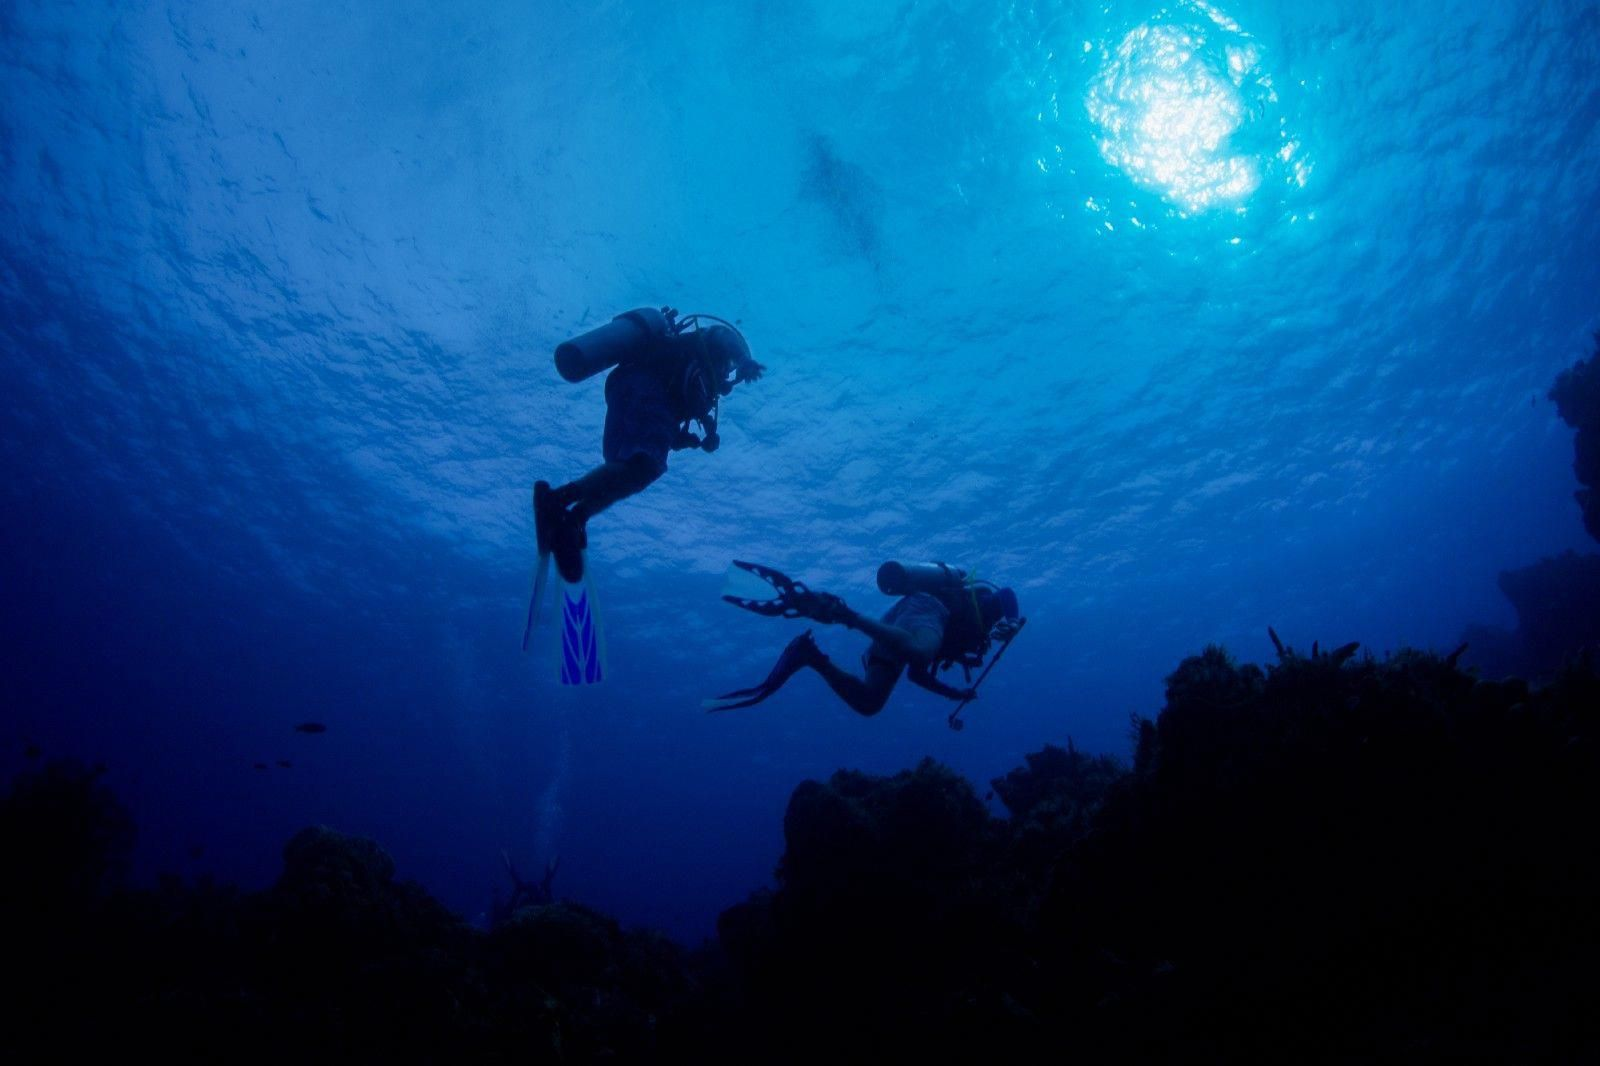 My first underwater photography training experience